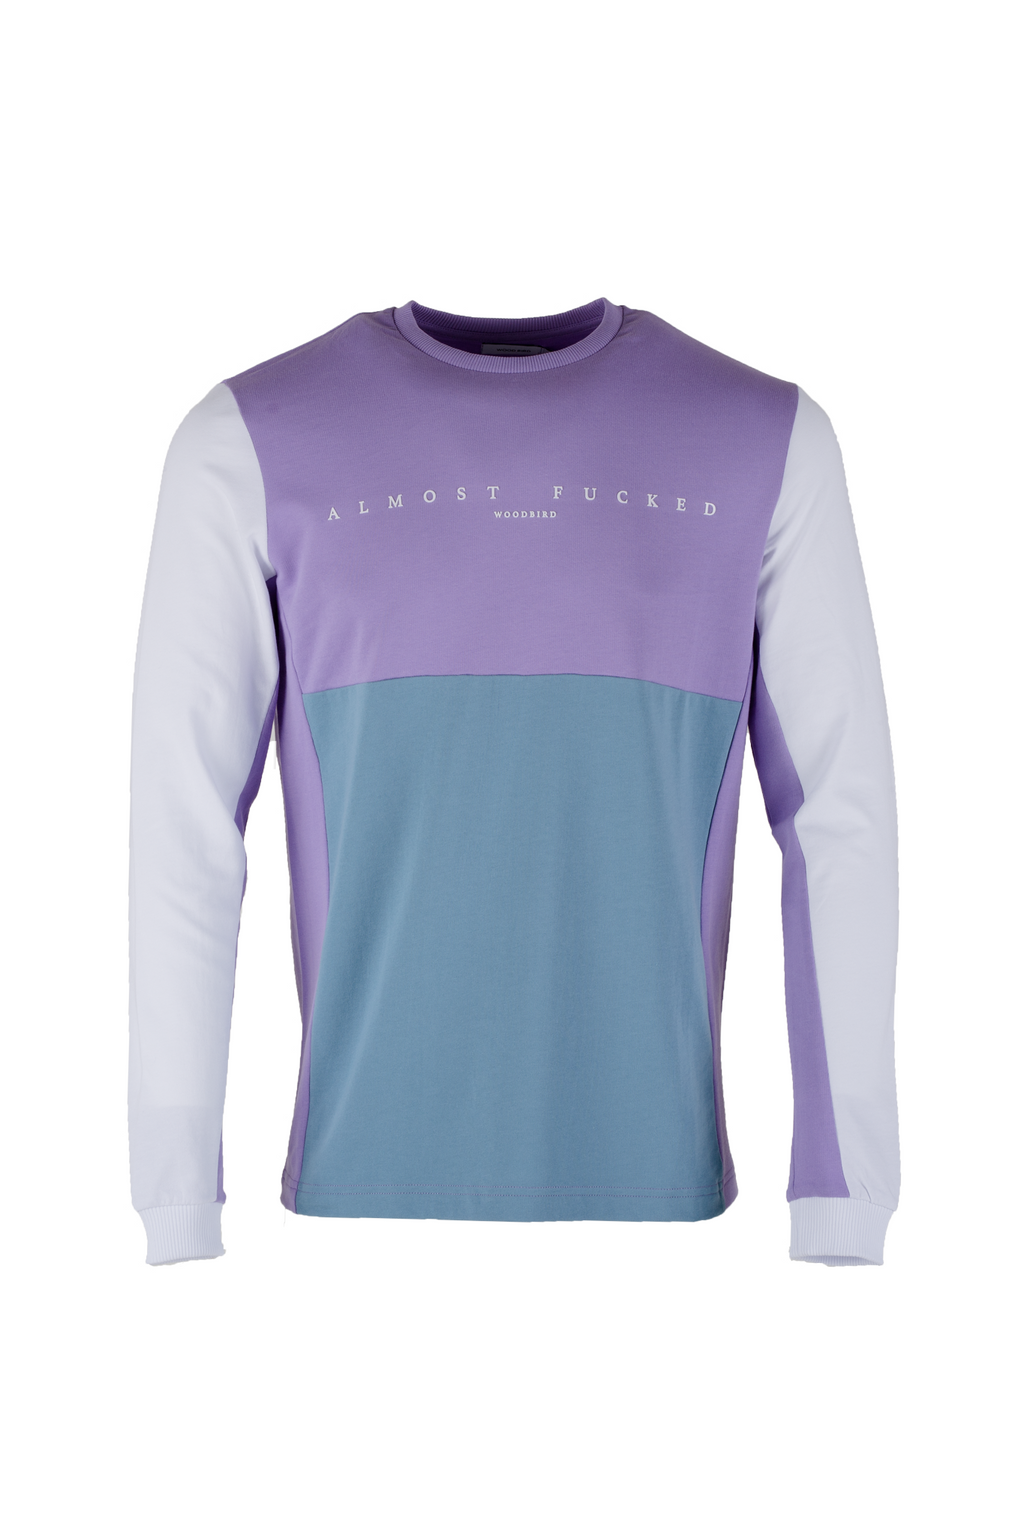 Harlequin Long Sleeve - Tee